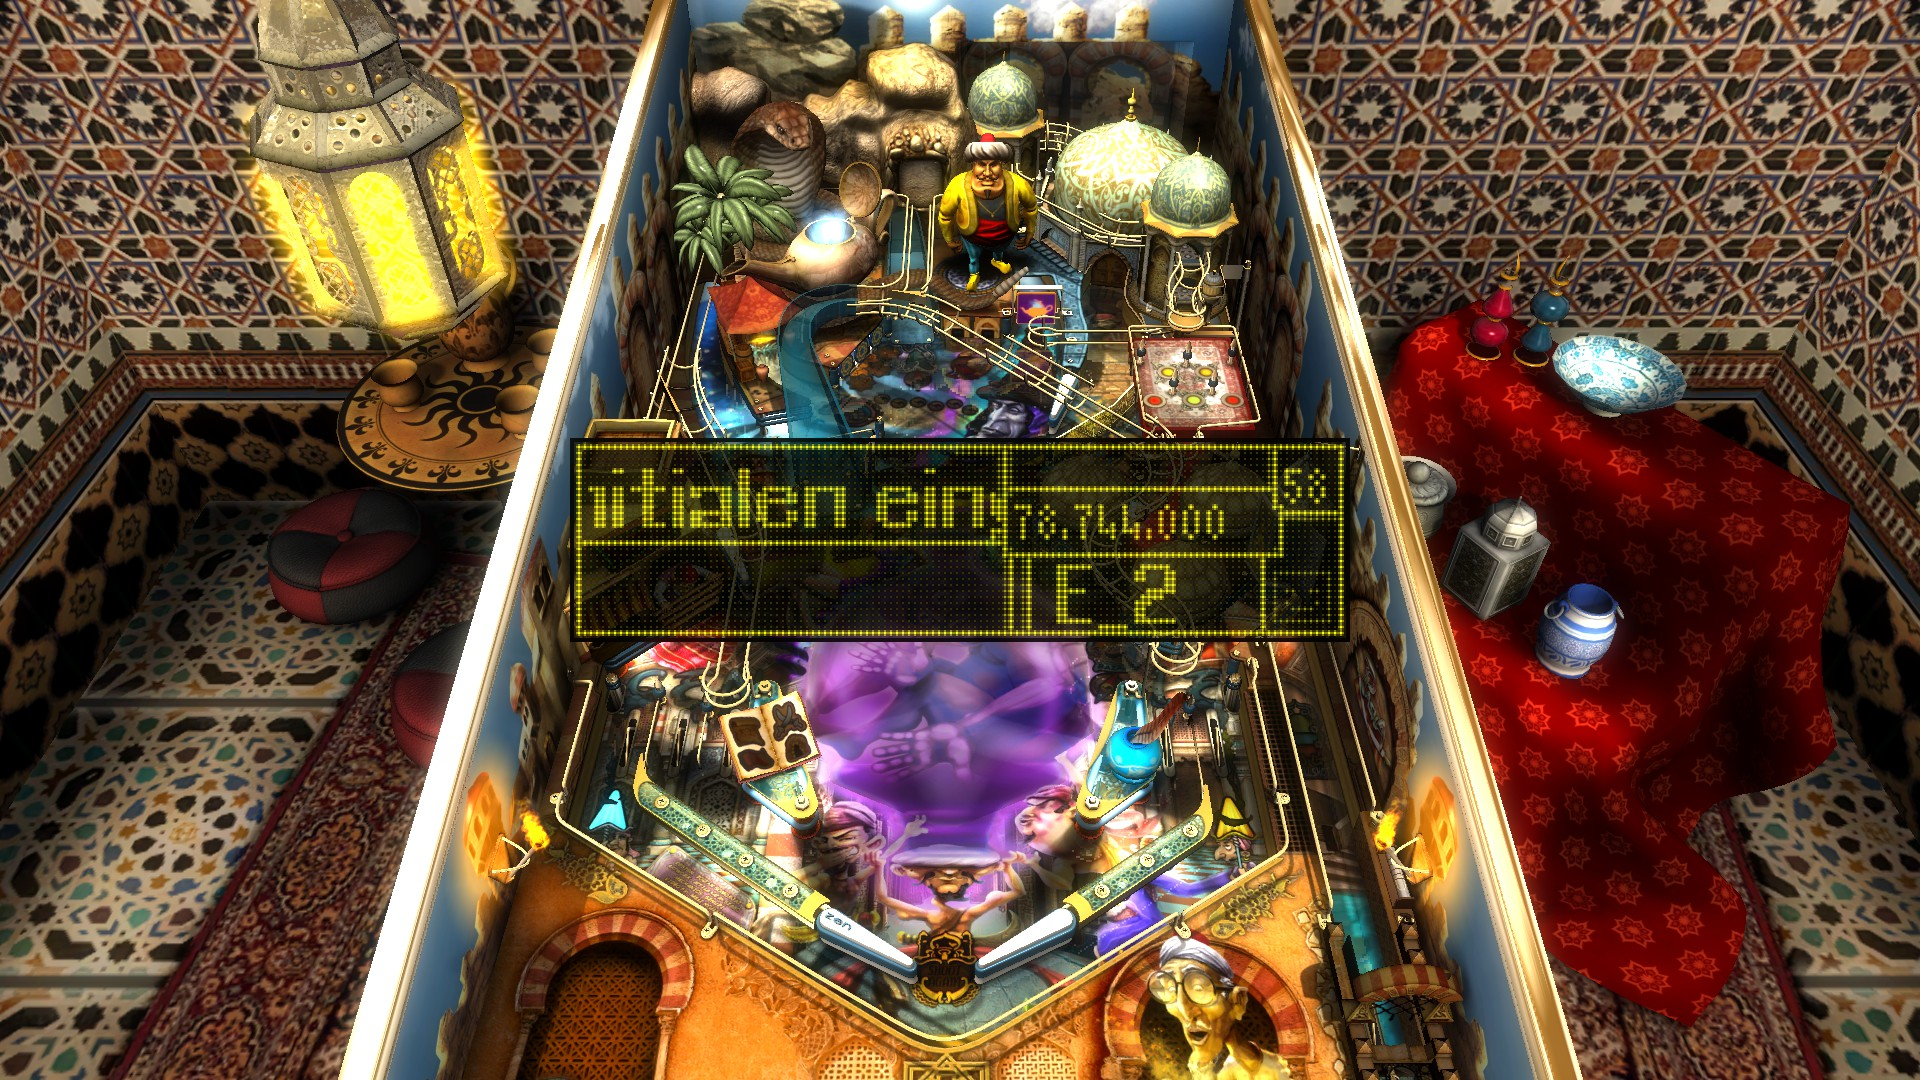 e2e4: Pinball FX 2: Pasha (PC) 78,744,000 points on 2017-02-23 14:06:25